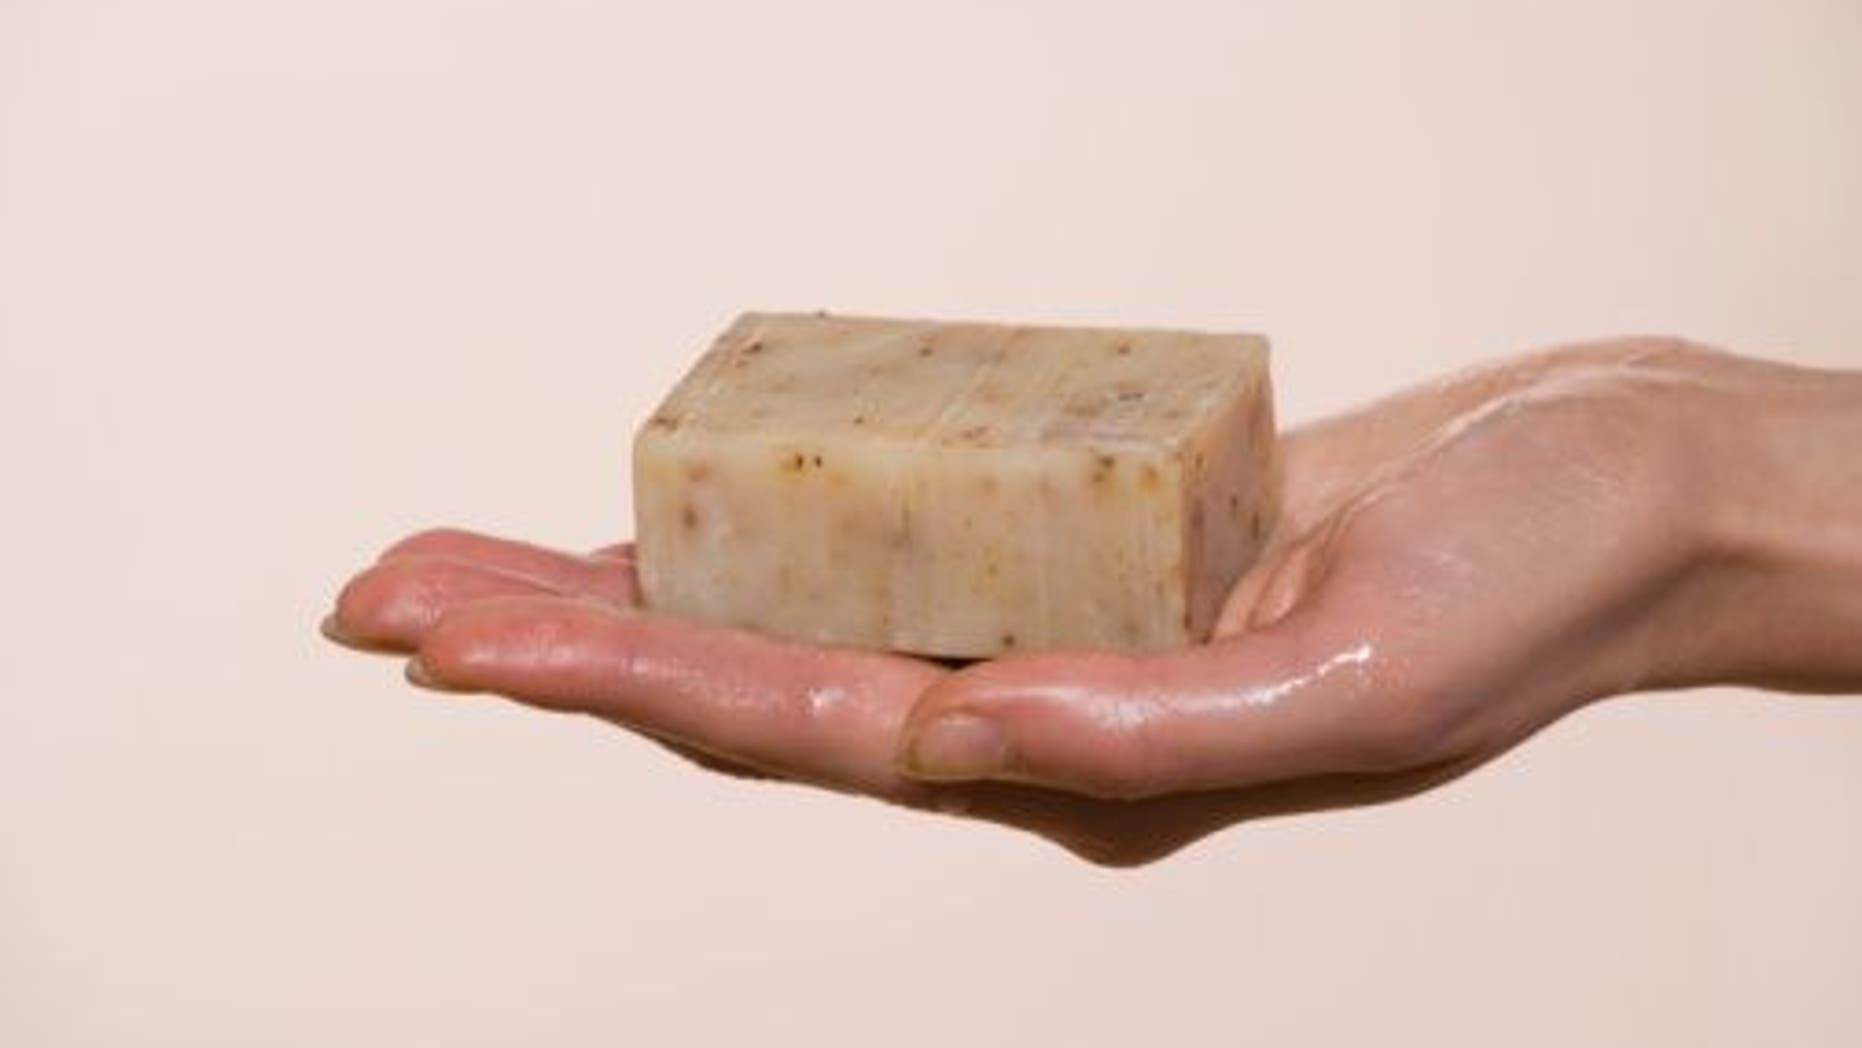 A new program save used hotel soap and recycles it for people who need it.